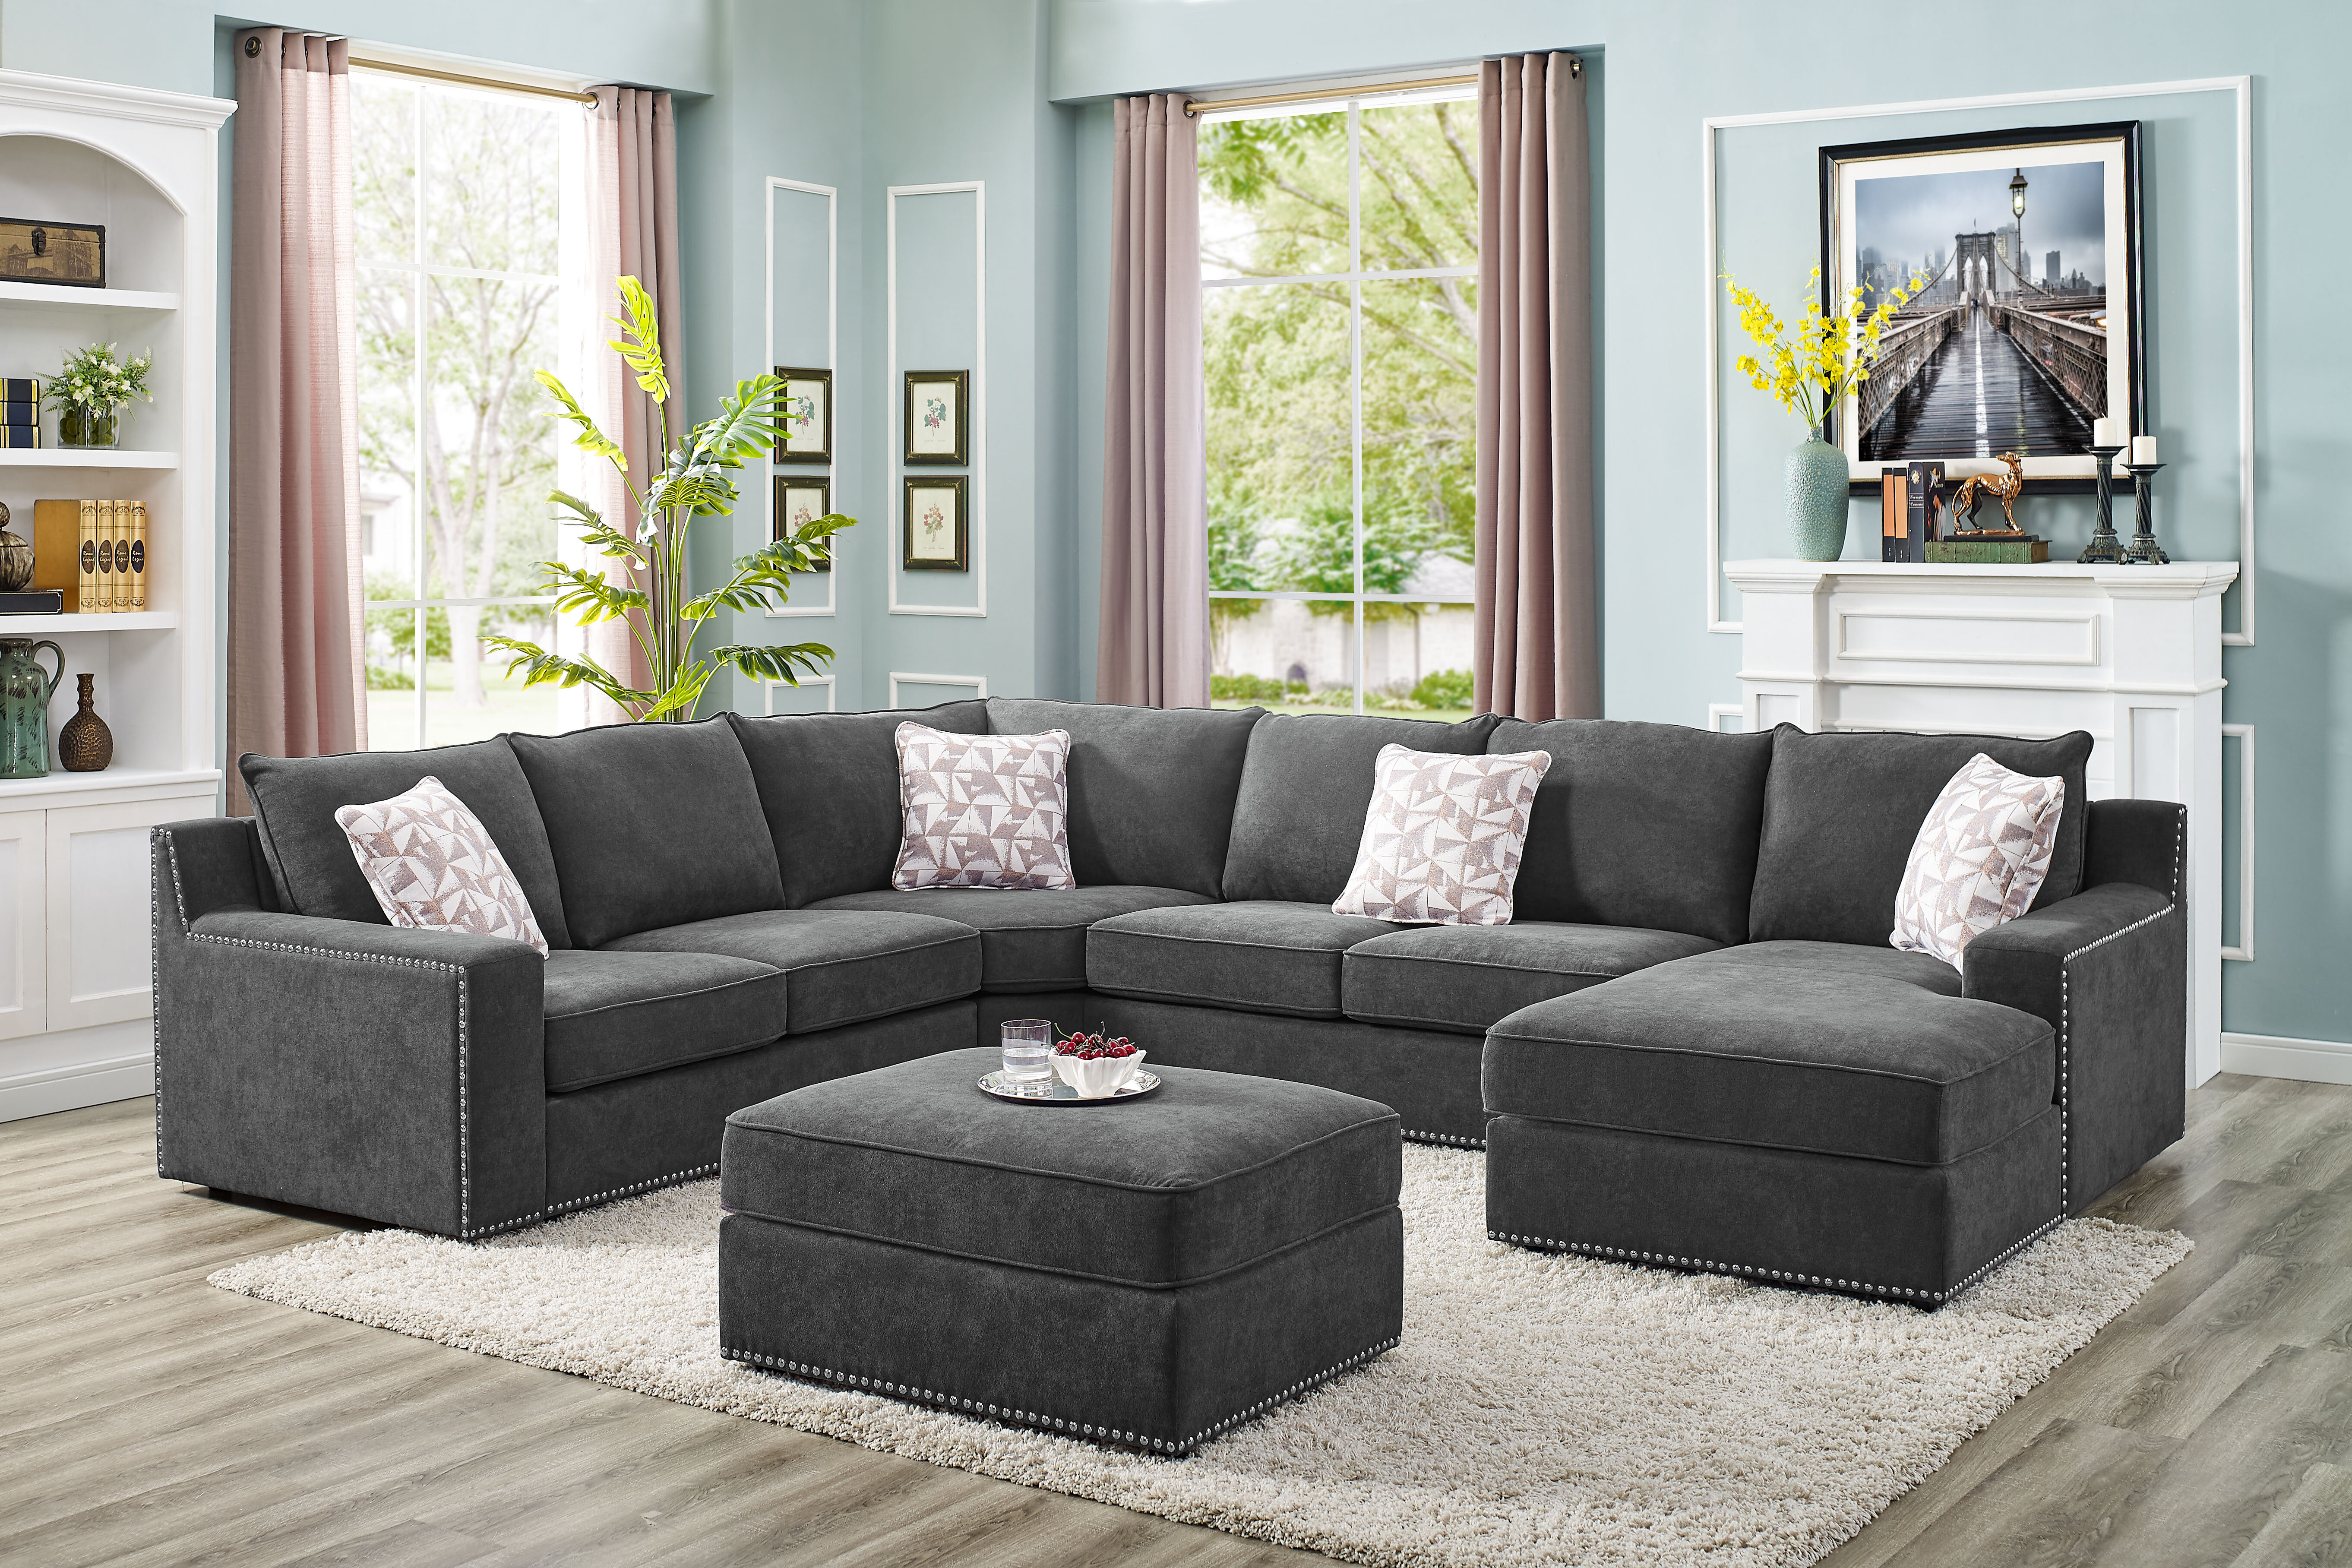 Makah 5 Seater Right Hand Facing Modular Sectional Sofa With Ottoman